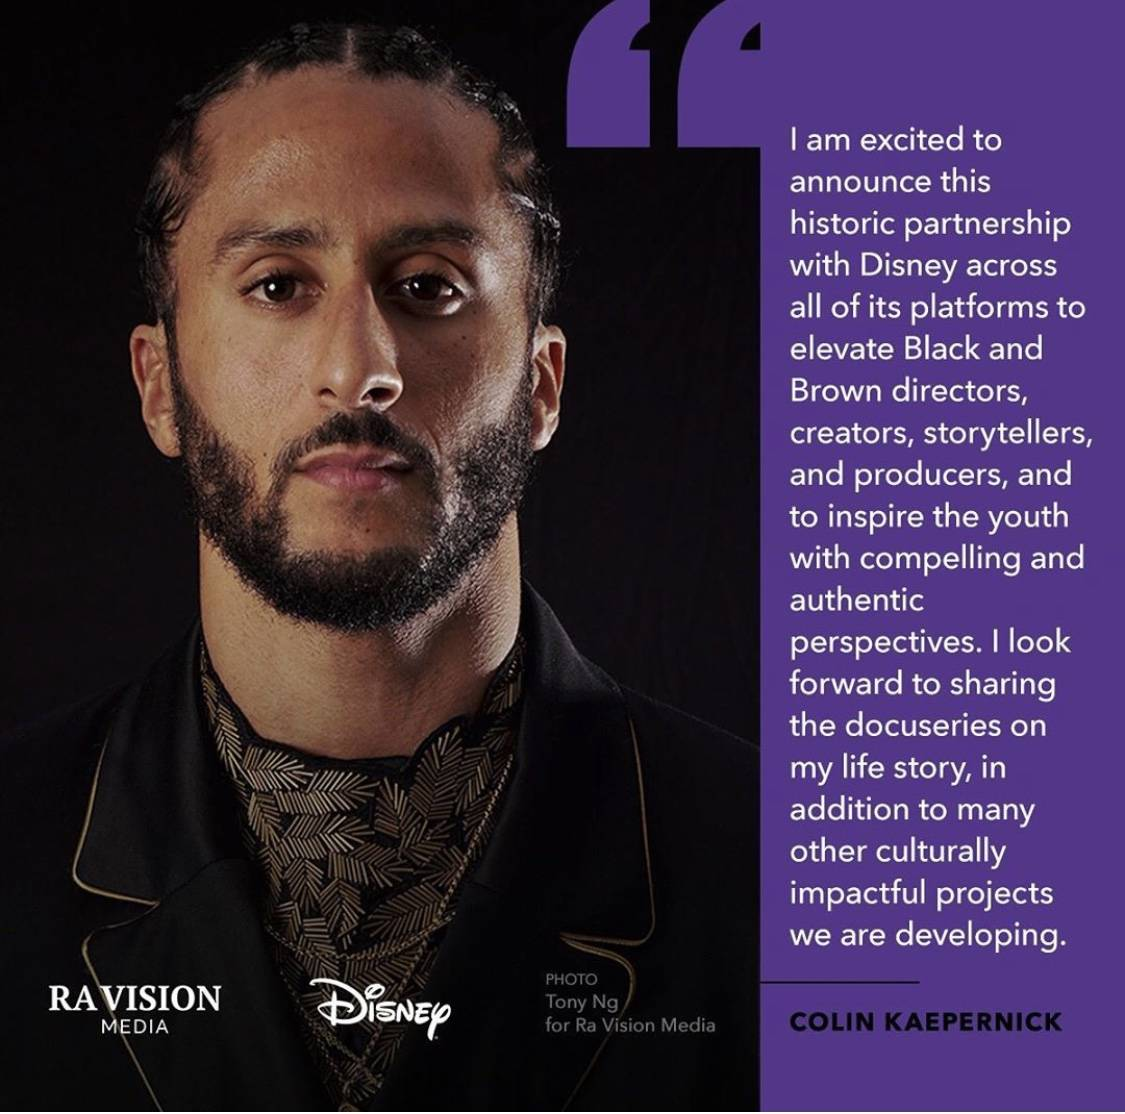 Know Your Rights Camp Teams Up With Disney to Elevate Black and Brown Creators